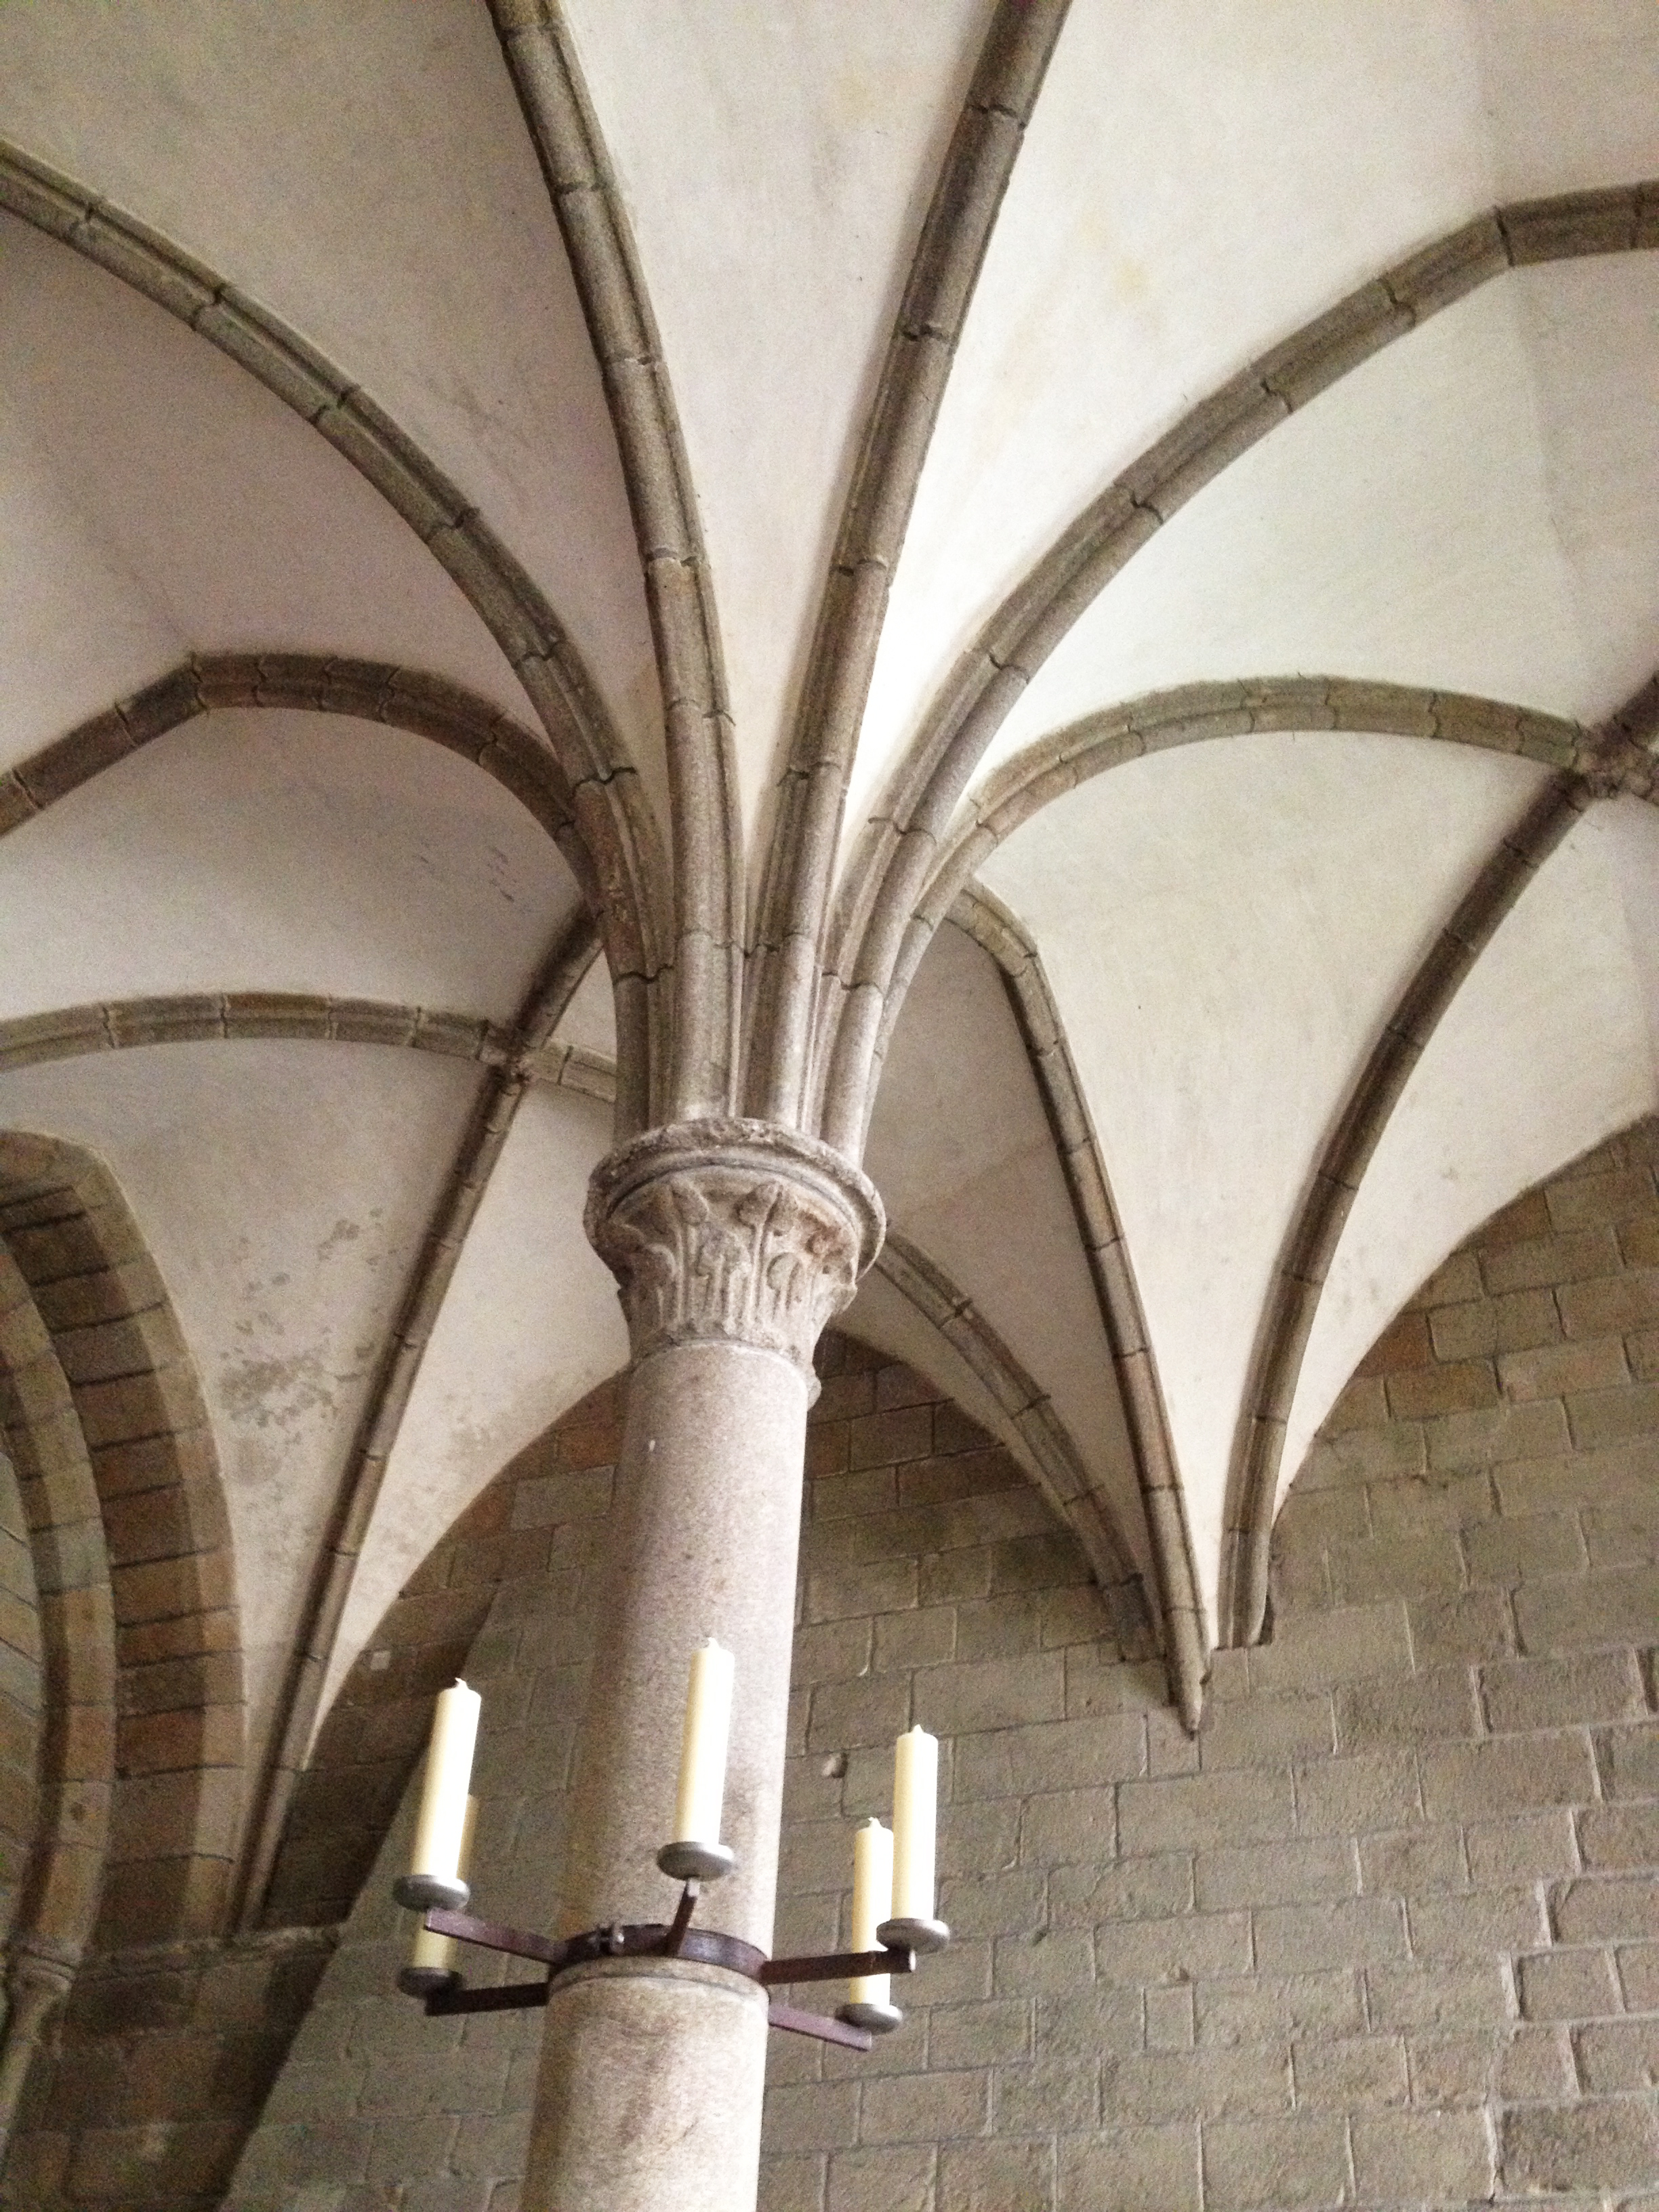 When the front half of the abbey crumbled in a land slide, a new gothic addition was constructed. In the nave of the church, the addition blends seamlessly with the rest of the Romanesque half, but down below, in the more private areas of the building the two styles collide more awkwardly, as seen here.